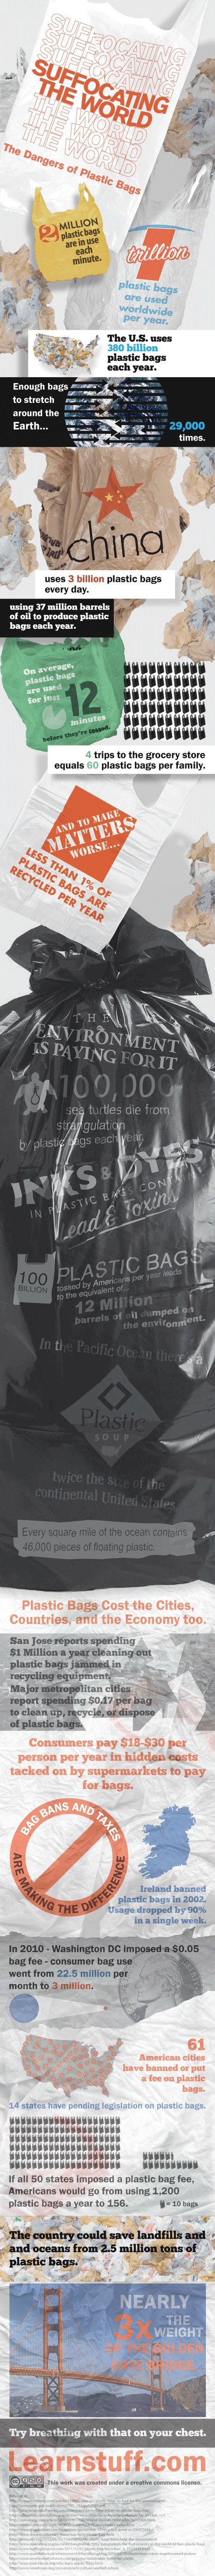 Ecology of Plastic Bags | Mrs. Nesbitt's Human Geography World | Scoop.it